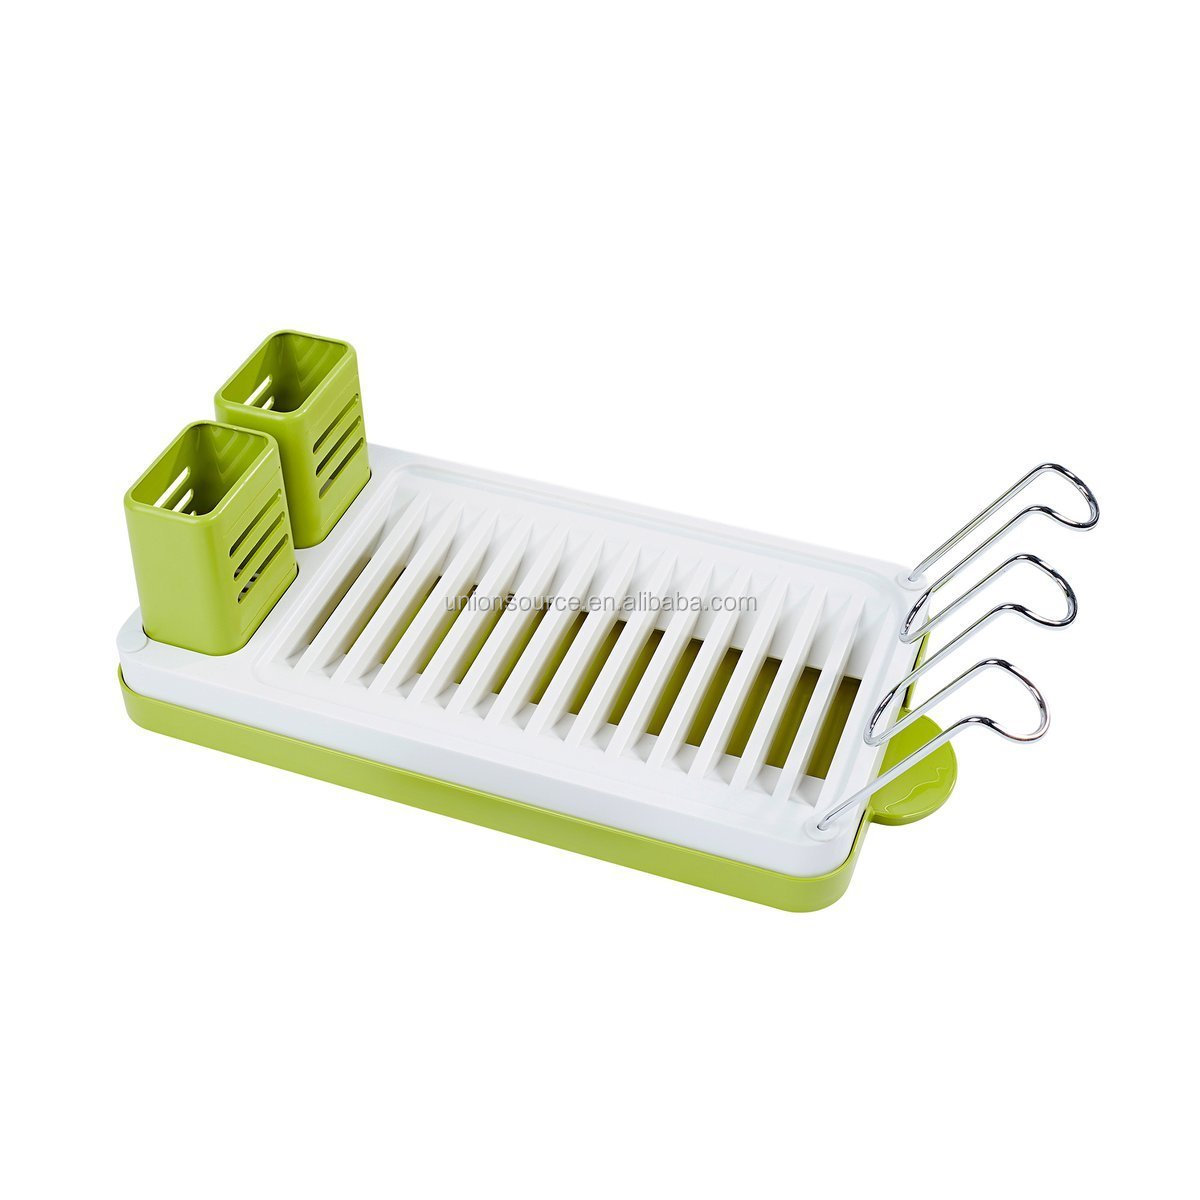 Hot Colorful Plastic Dish Drying Rack Kitchen Drainer Storage Shelf With Drain